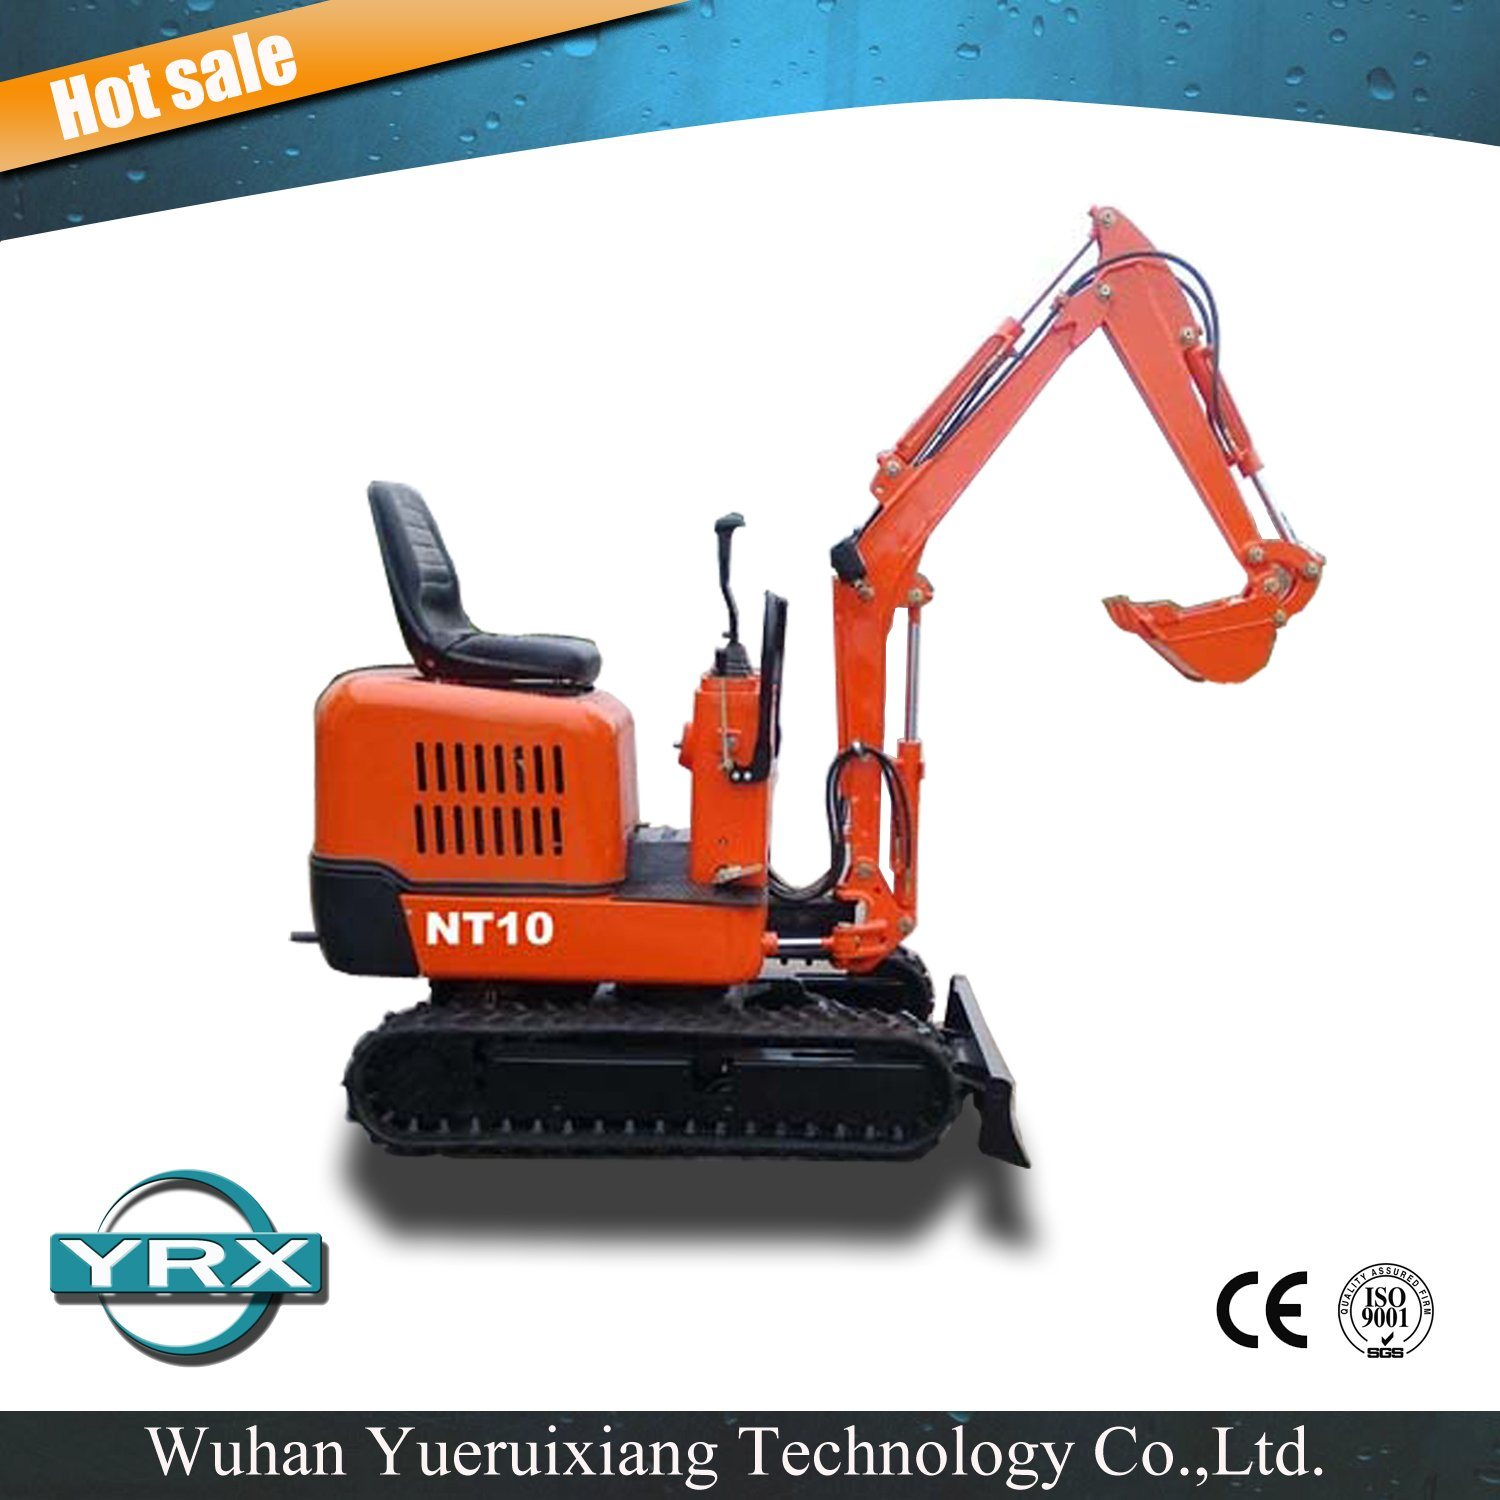 Ce Approved 1000kg Nt10 Mini Excavator for Sale